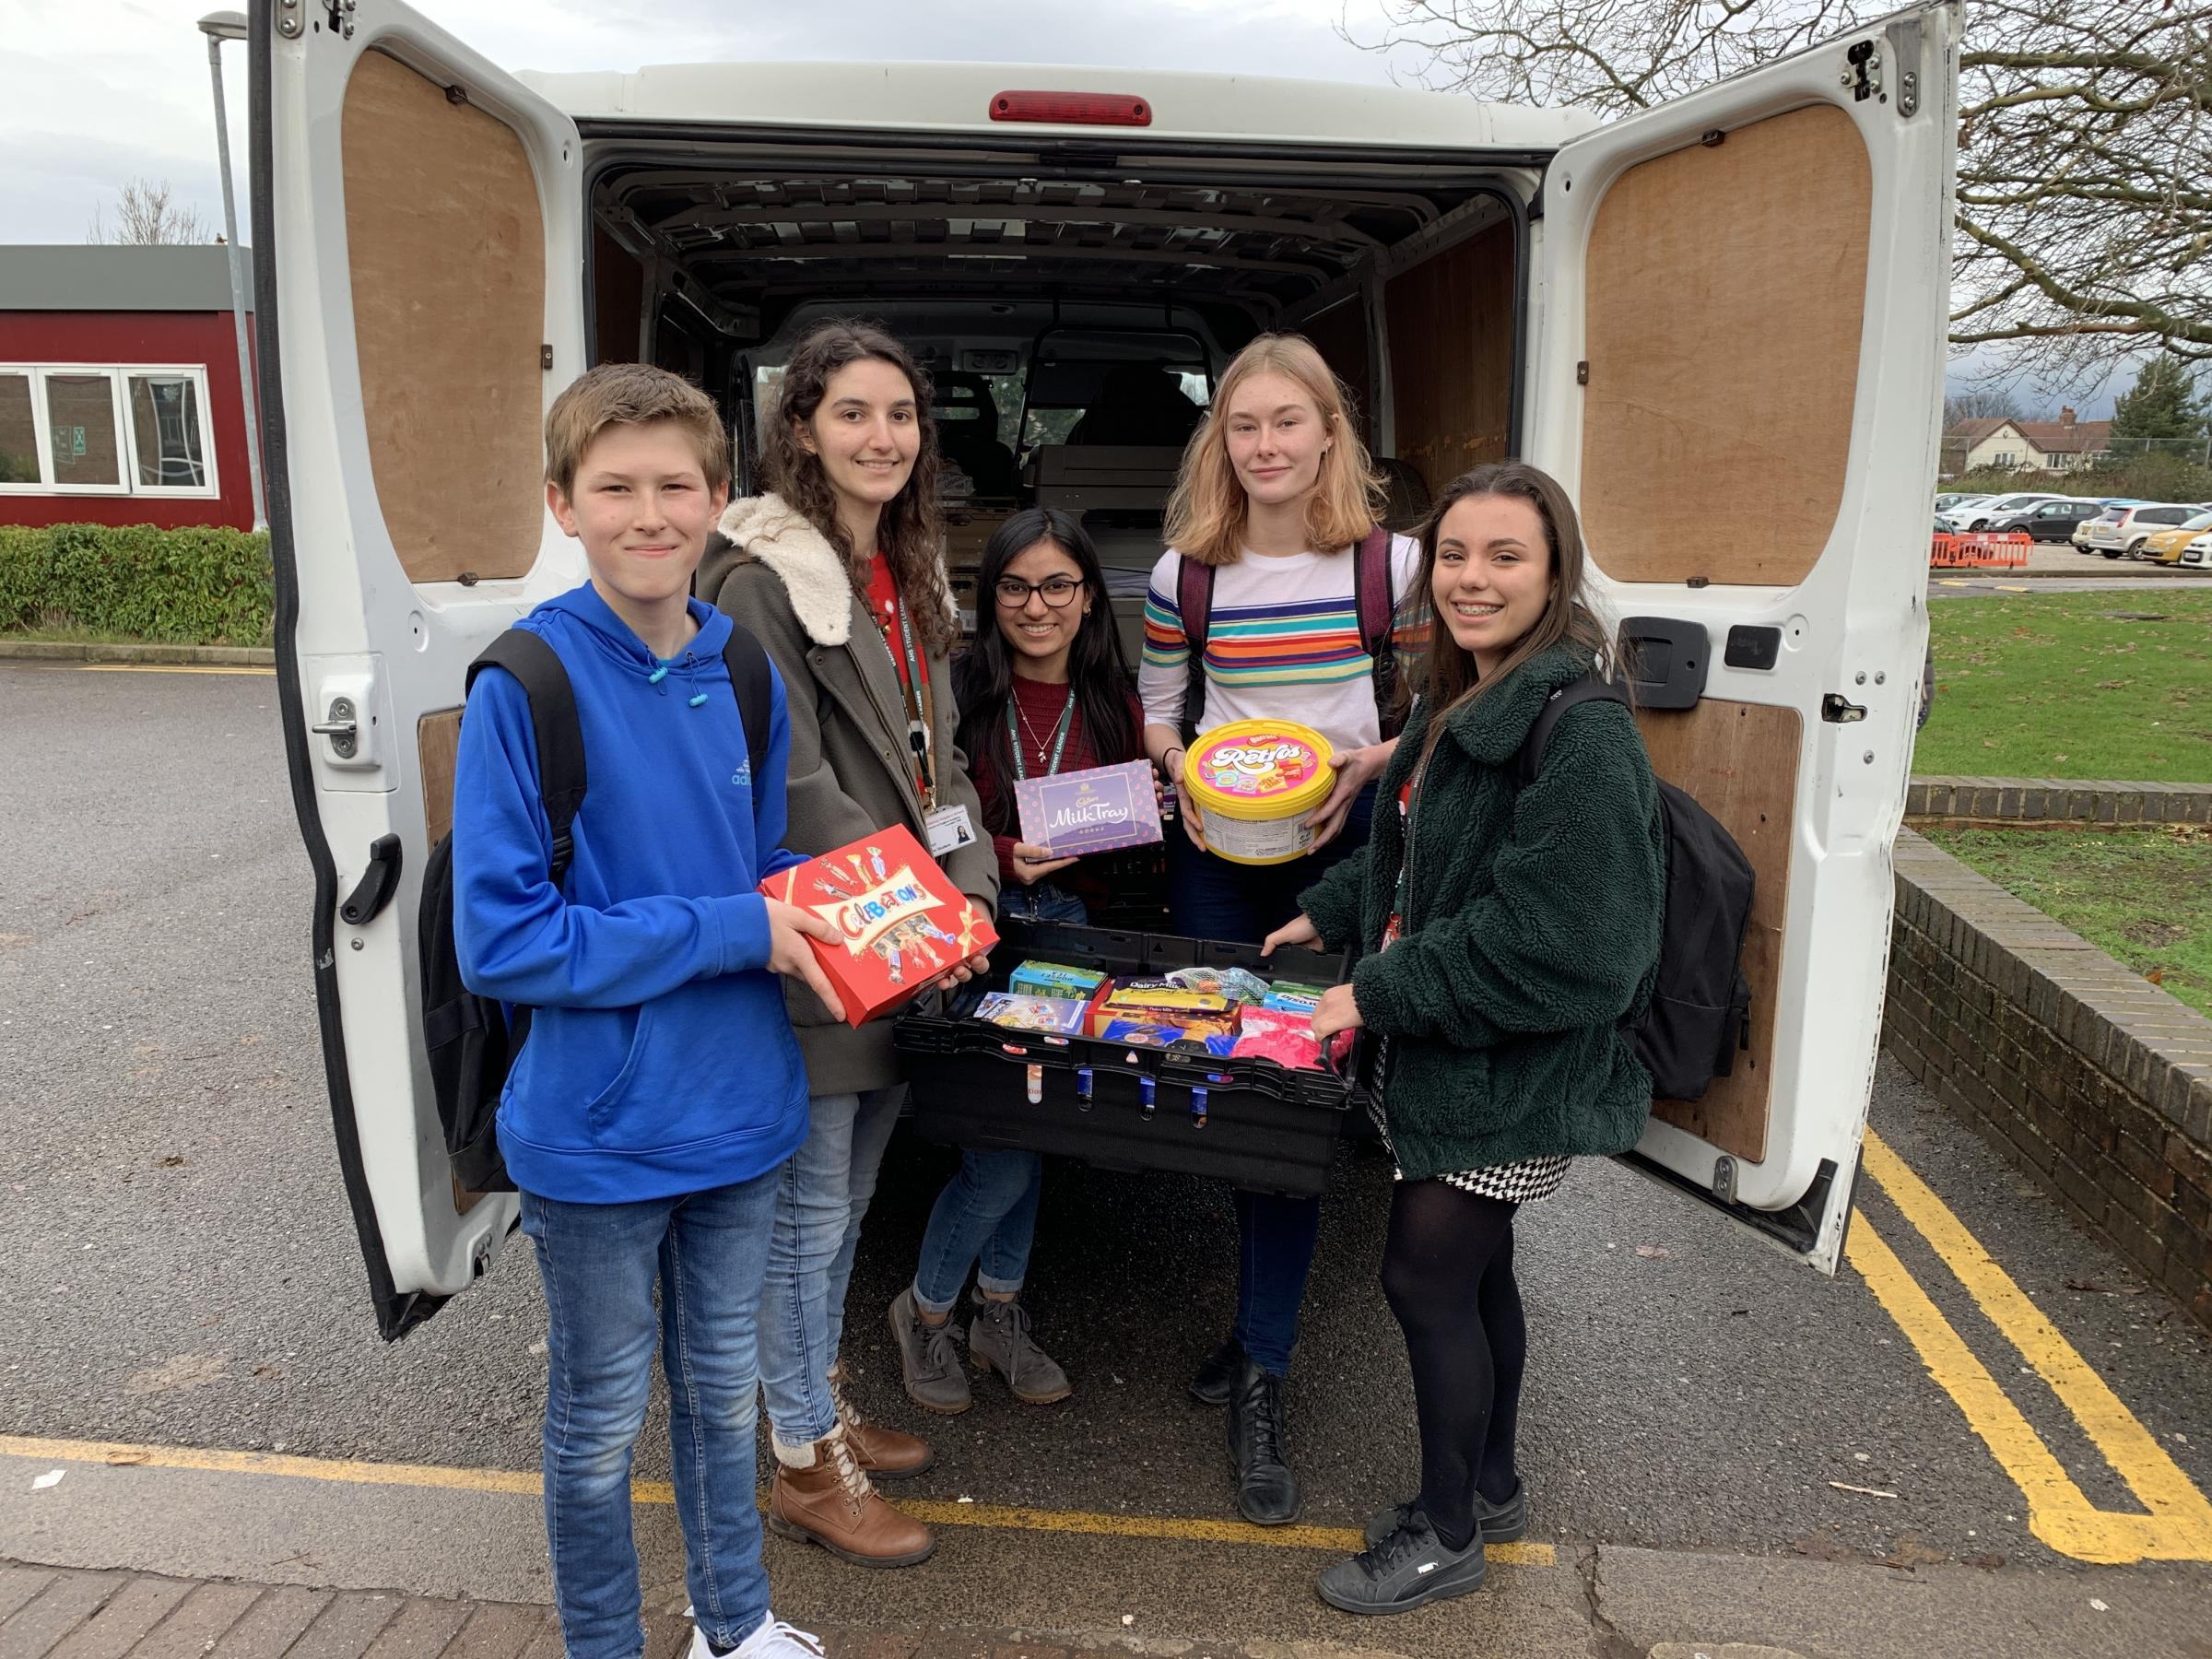 GIFTS: Students at Archbishop Holgate's School load a van full of donations for York Foodbank.